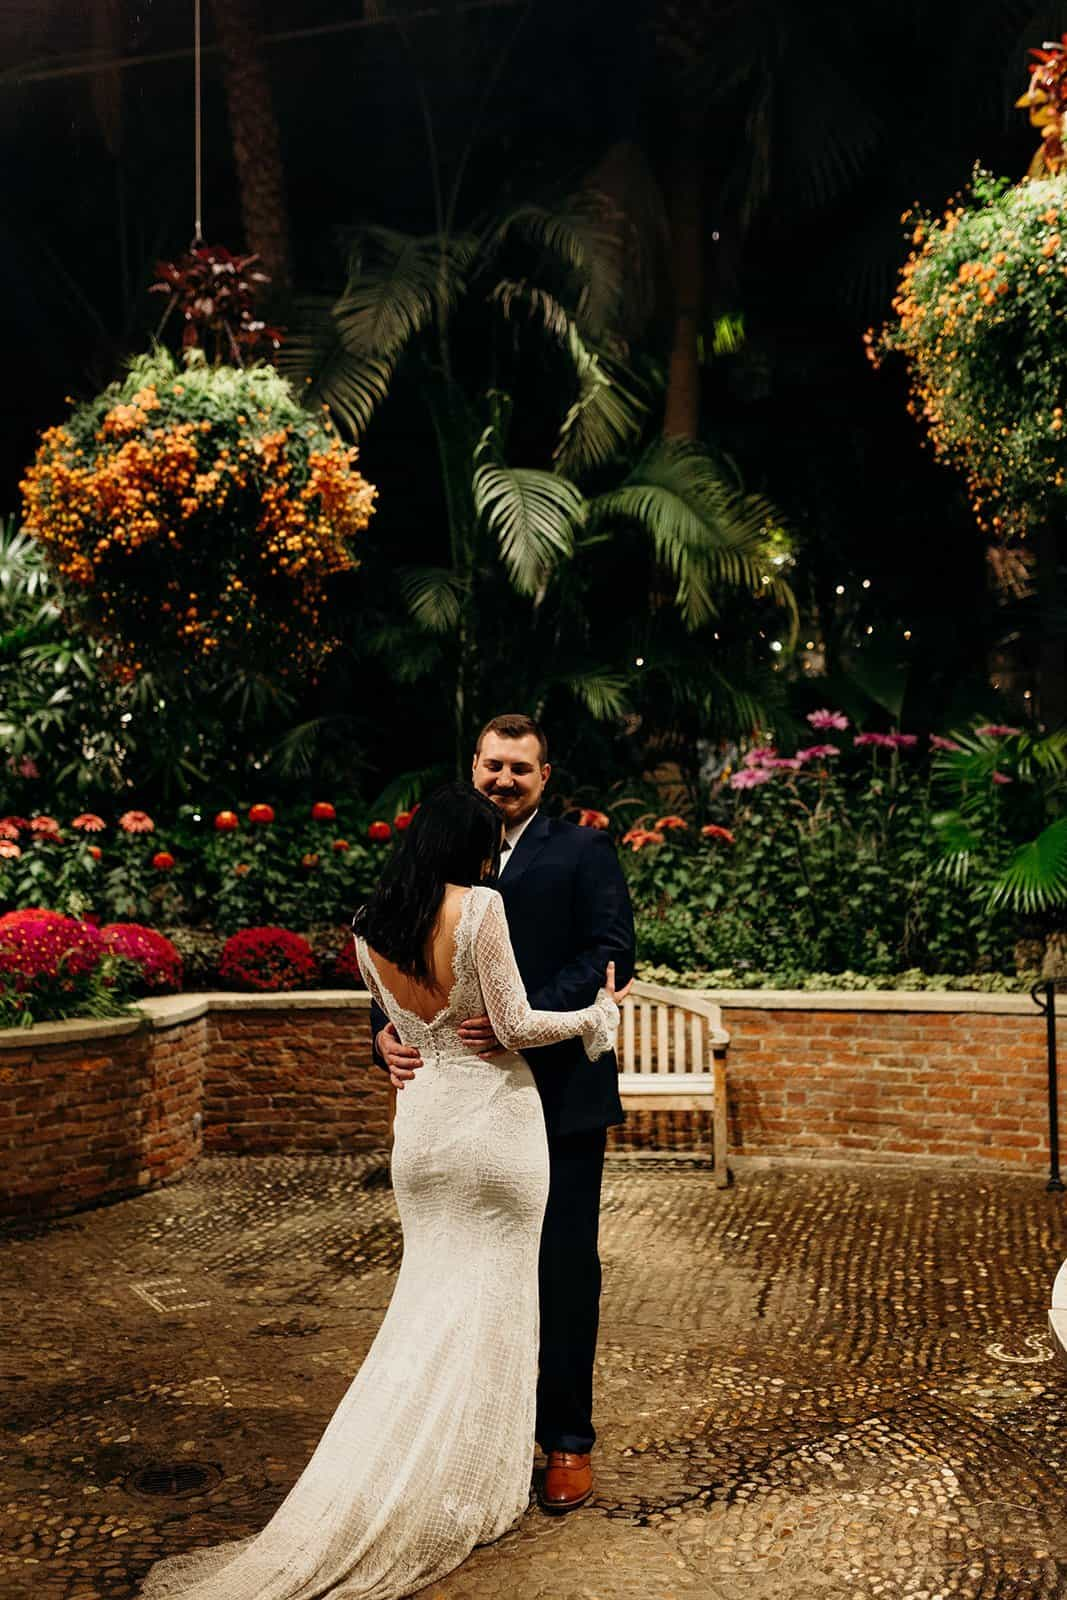 Bride and groom dance during a phipps conservatory wedding